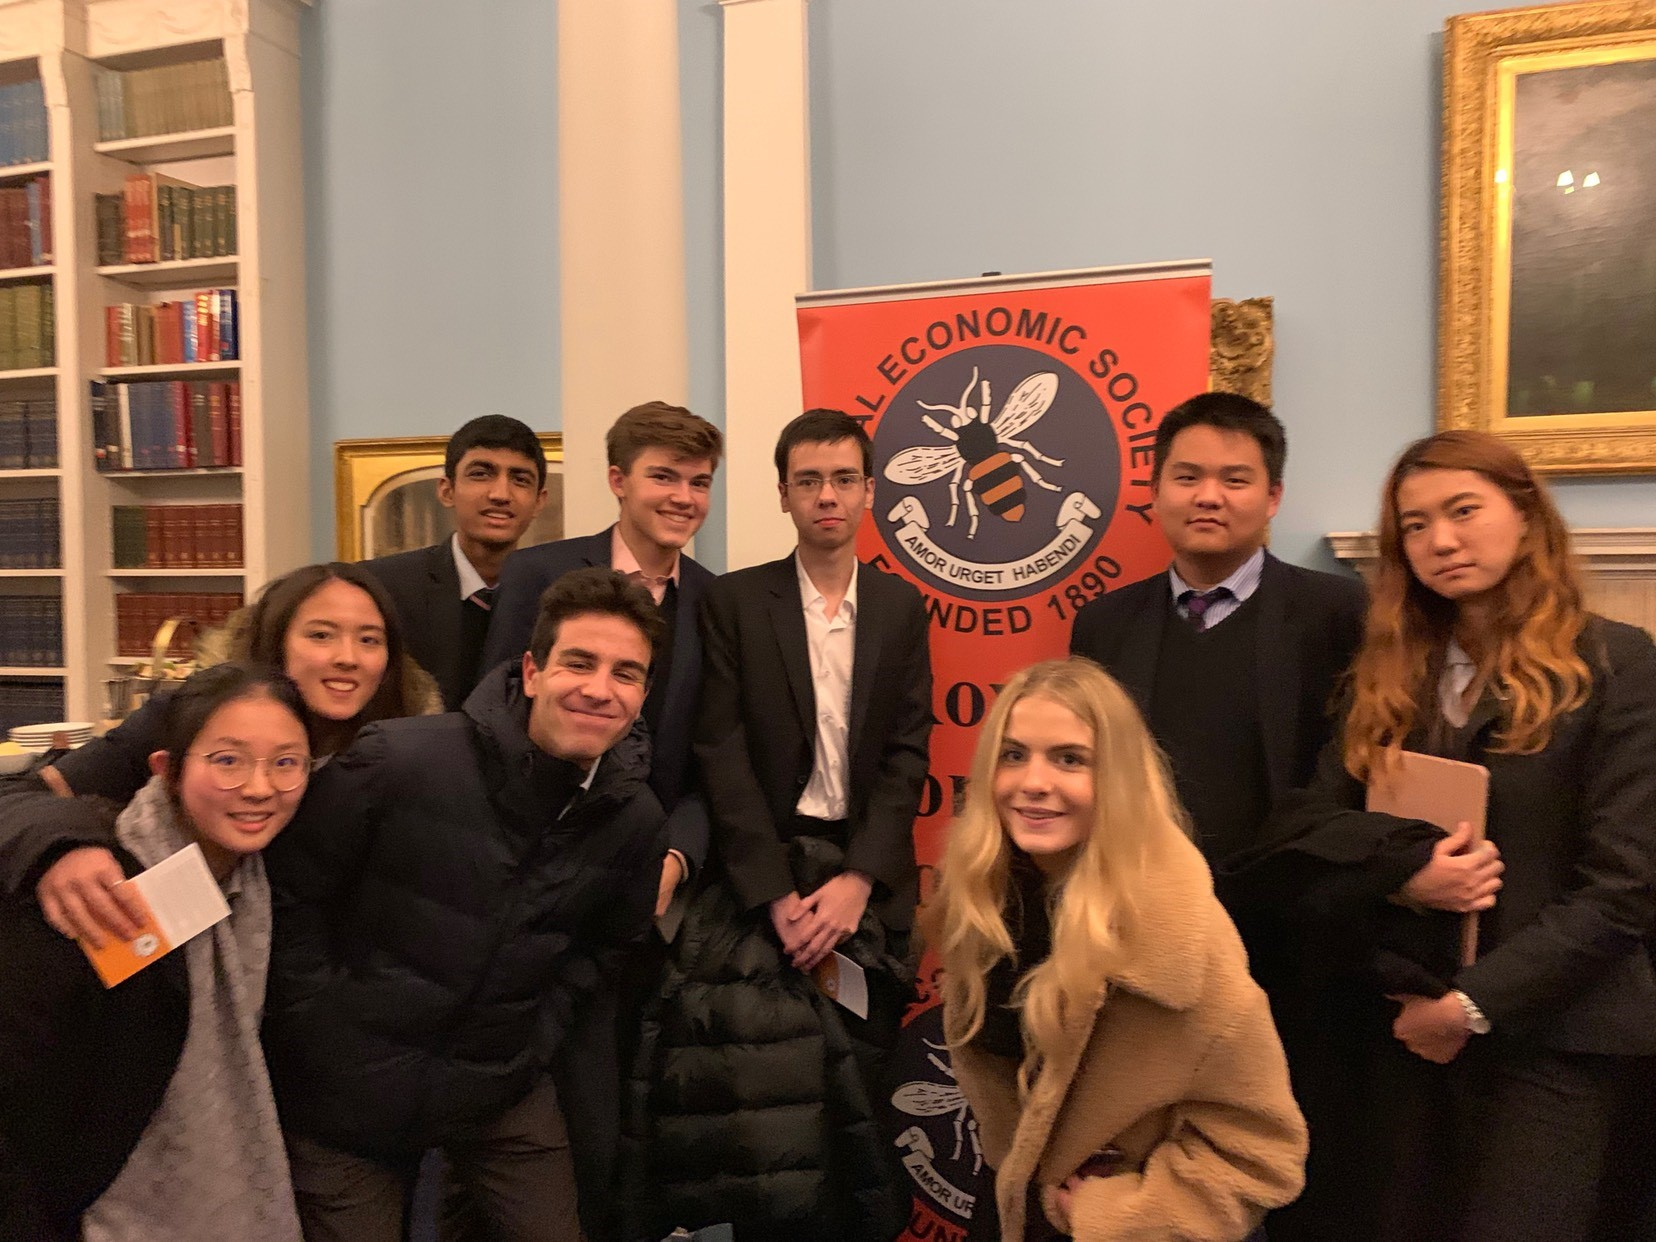 Royal Economics Society Trip